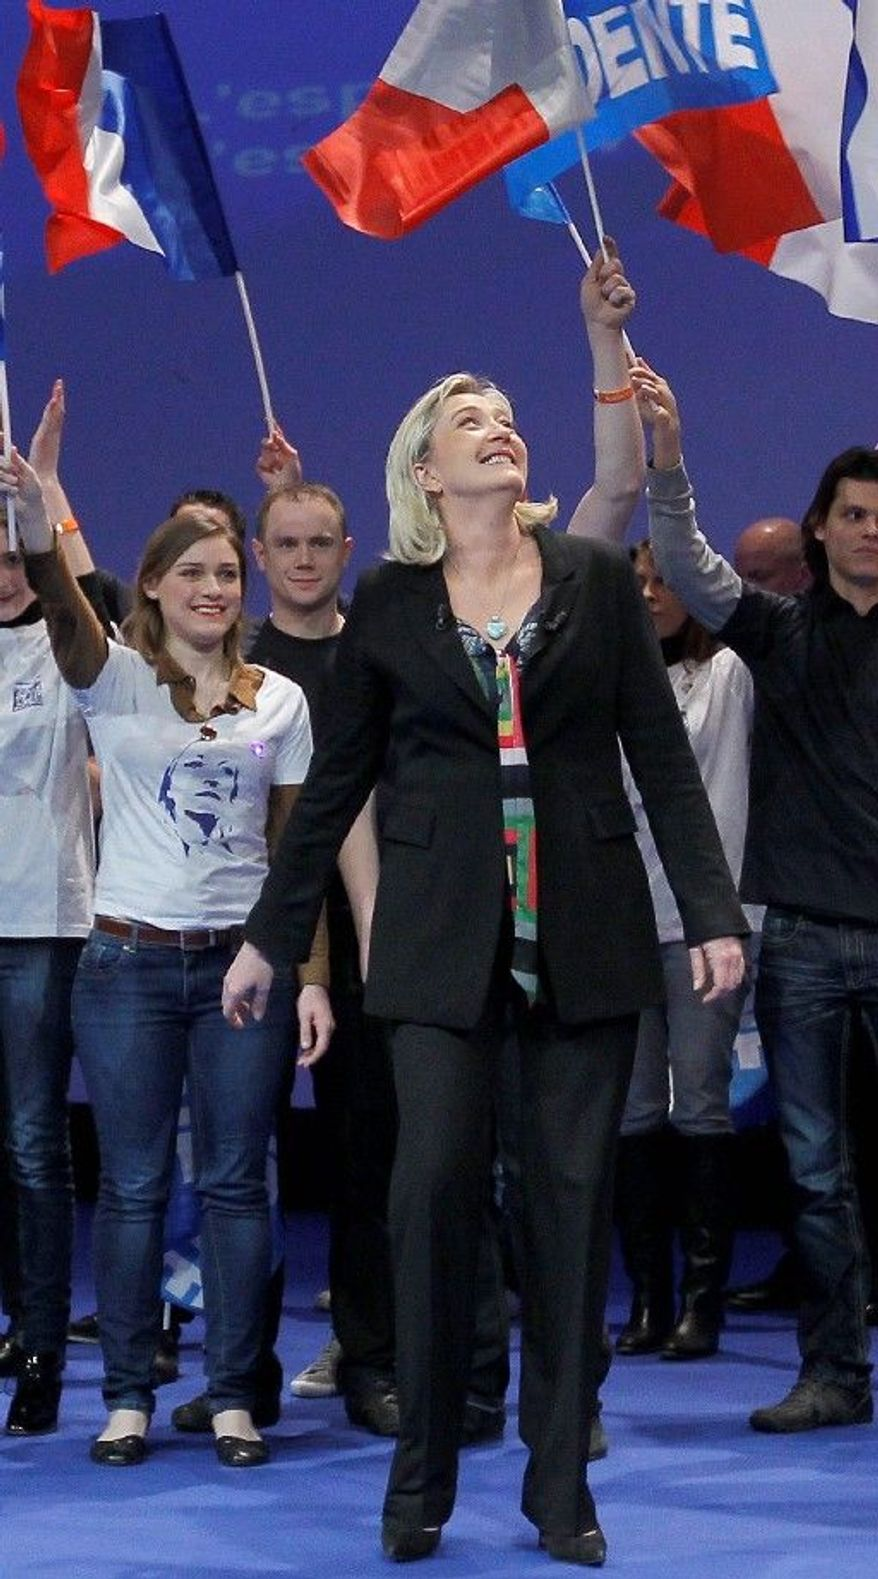 Marine Le Pen, at the National Front party's convention in Lille on Sunday, took over leadership of party last year from her father, Jean-Marie Le Pen, and is a candidate with some following in the 2012 French presidential elections. Polls show her not far behind incumbent Nicolas Sarkozy. (Associated Press)